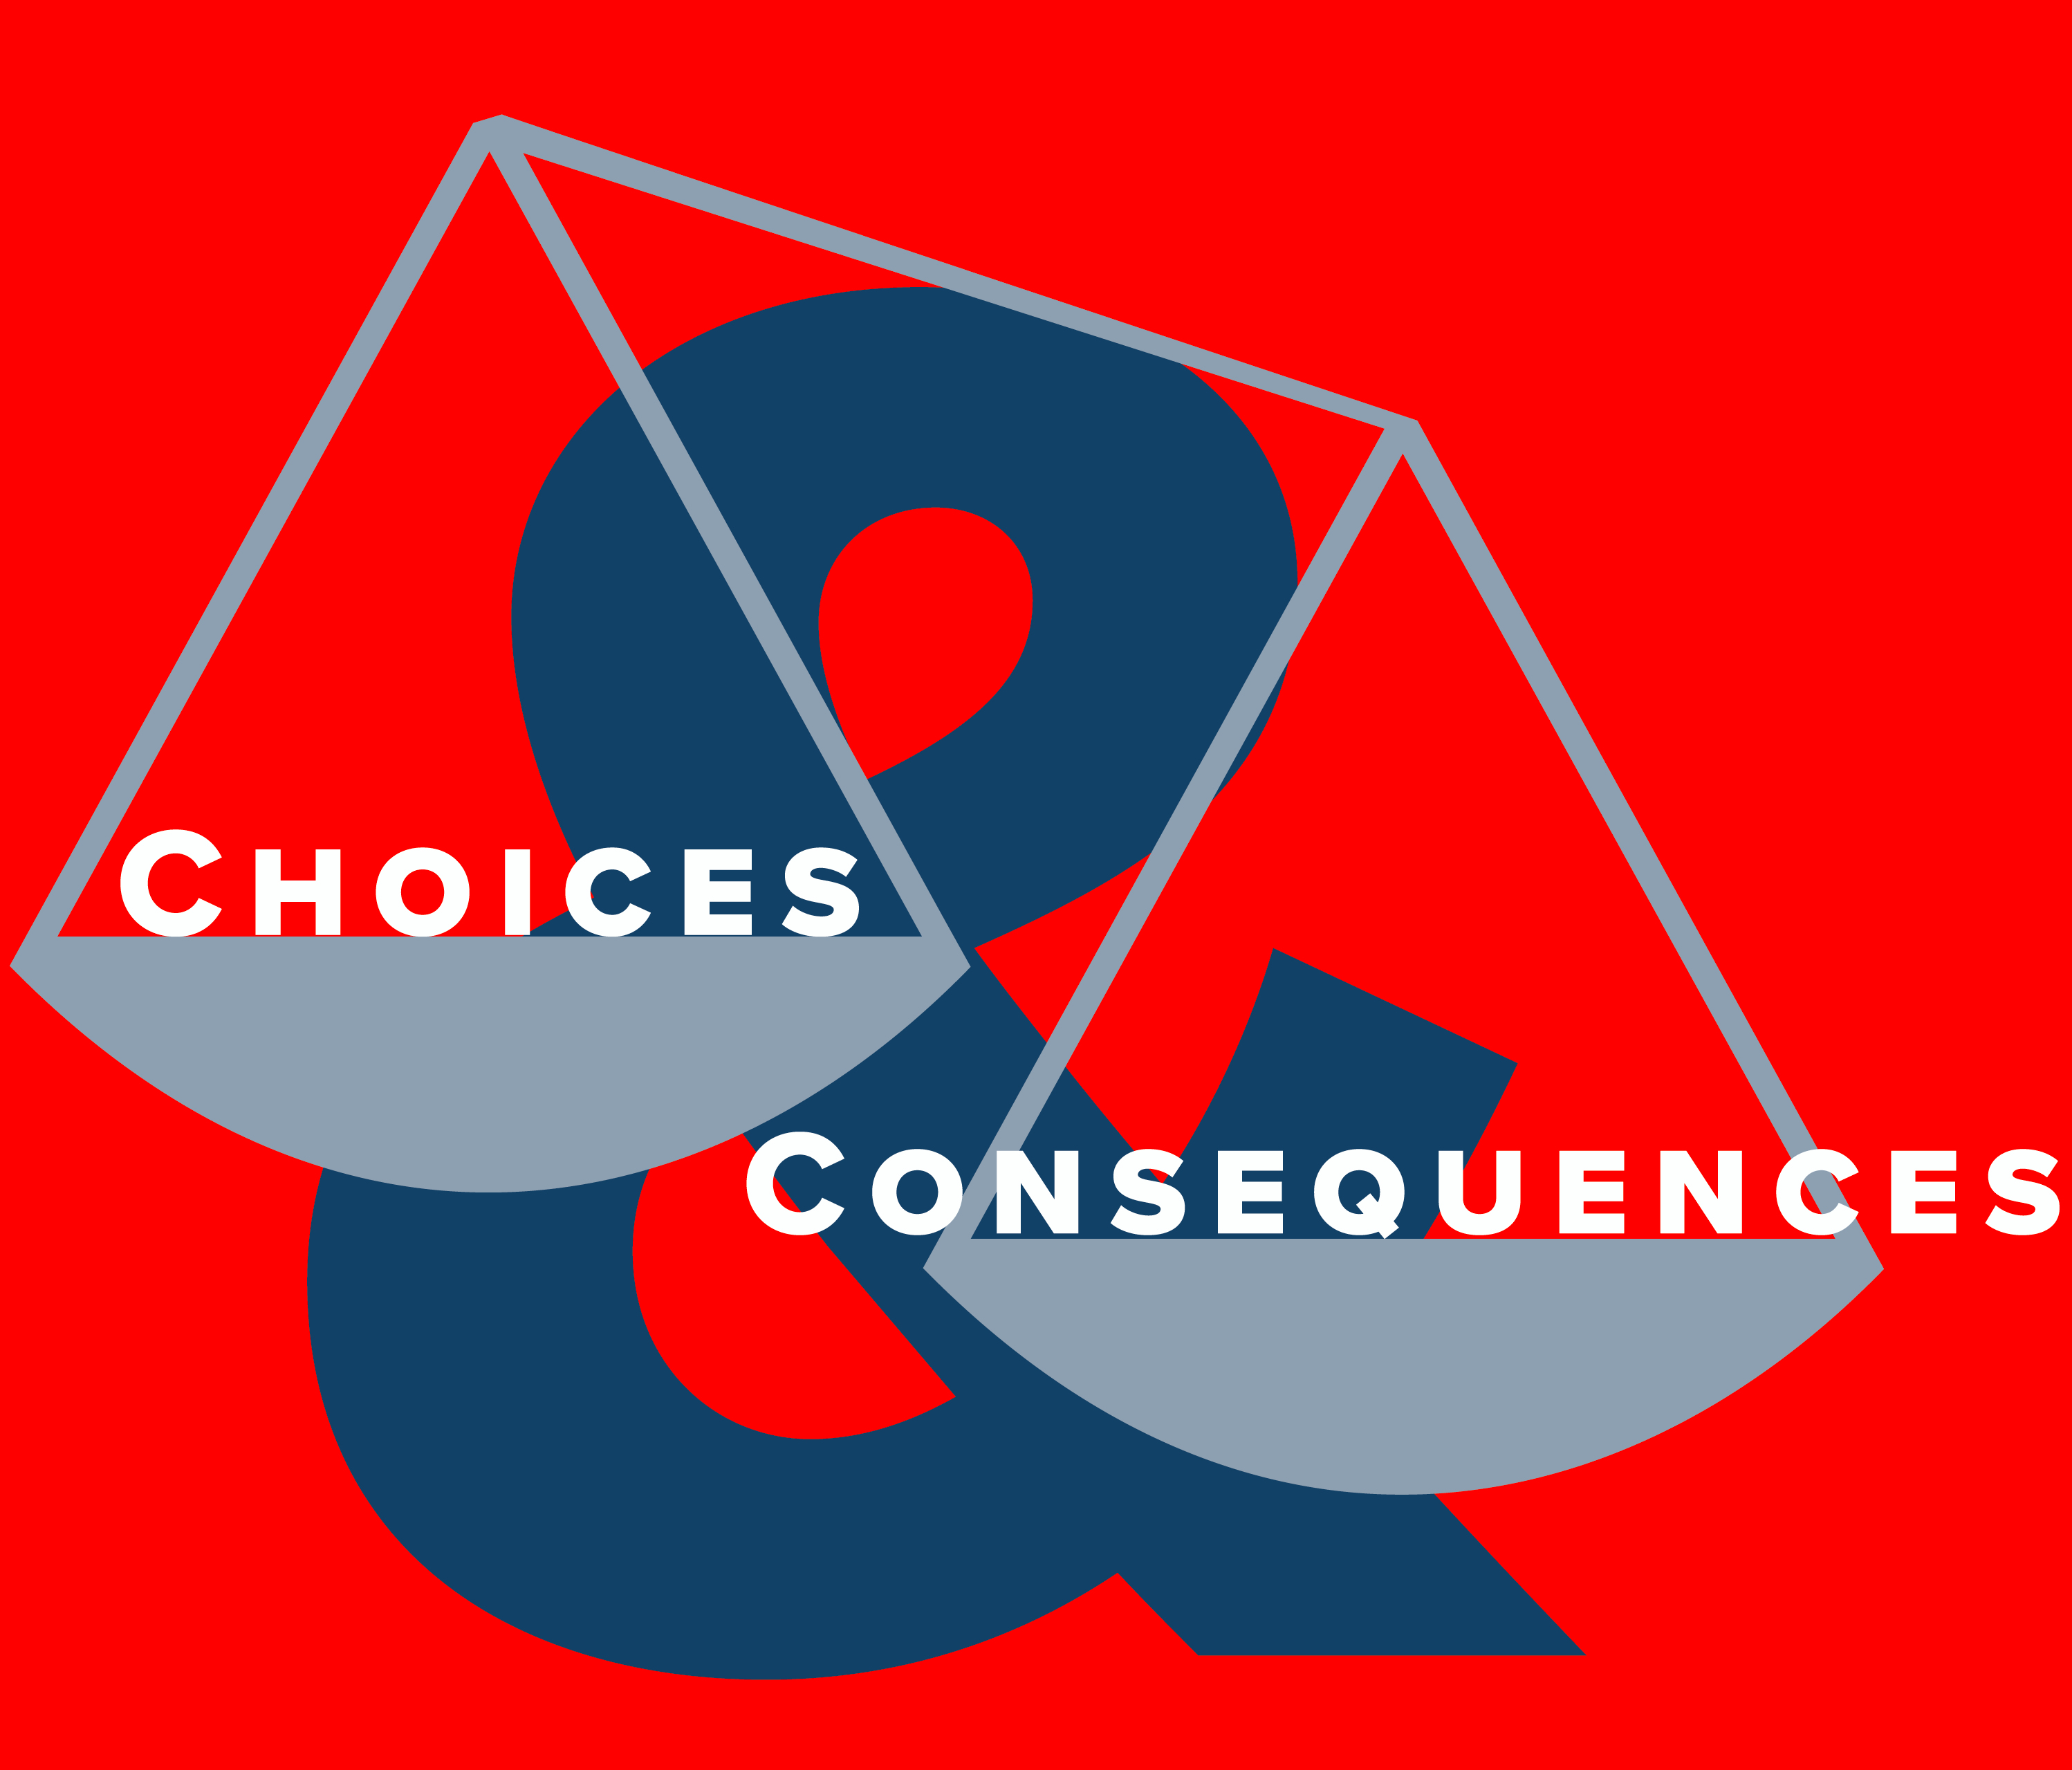 Choices And Consequences Loose Thoughts